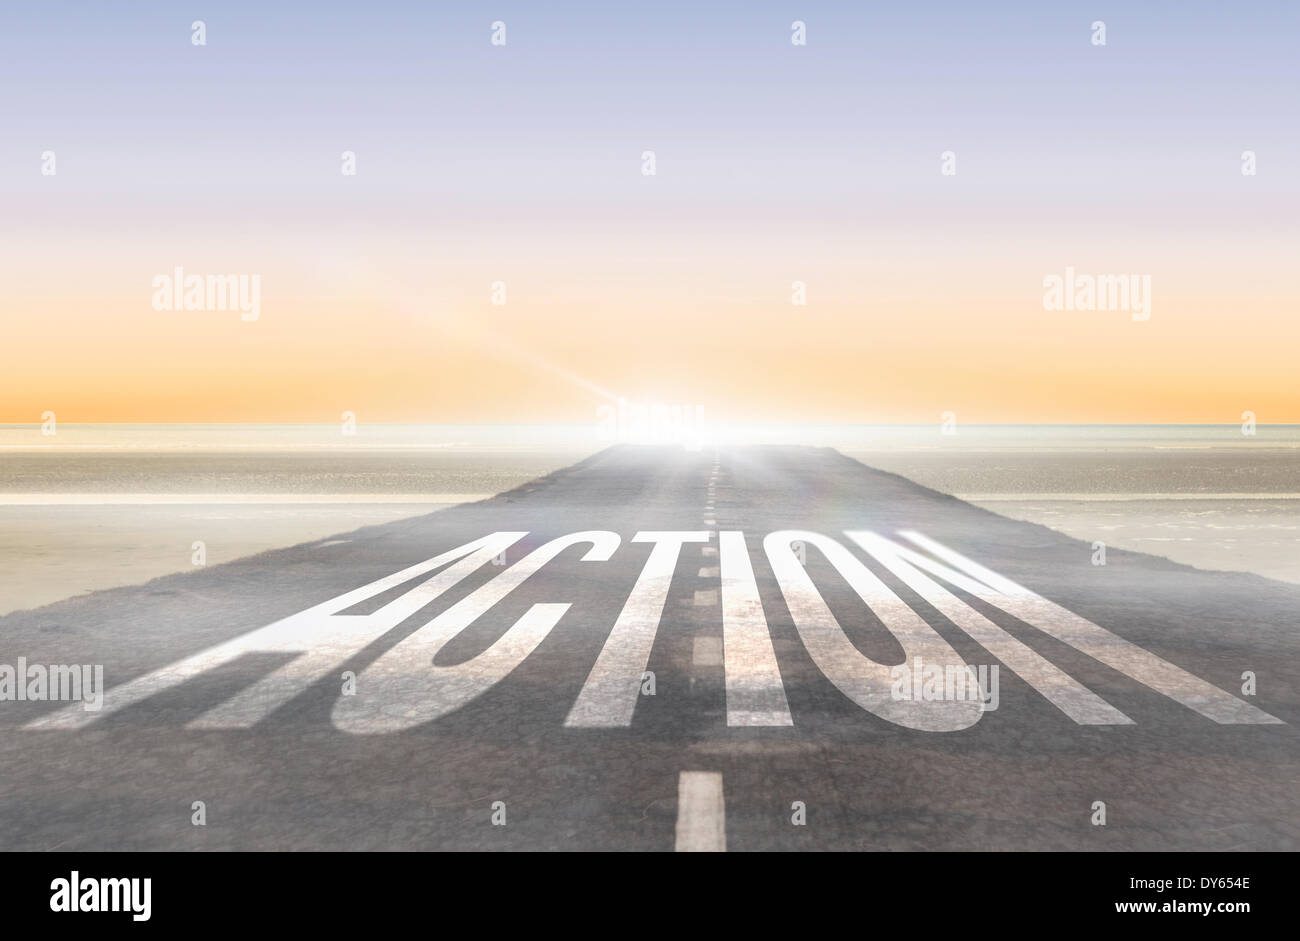 Action against road leading out to the horizon - Stock Image